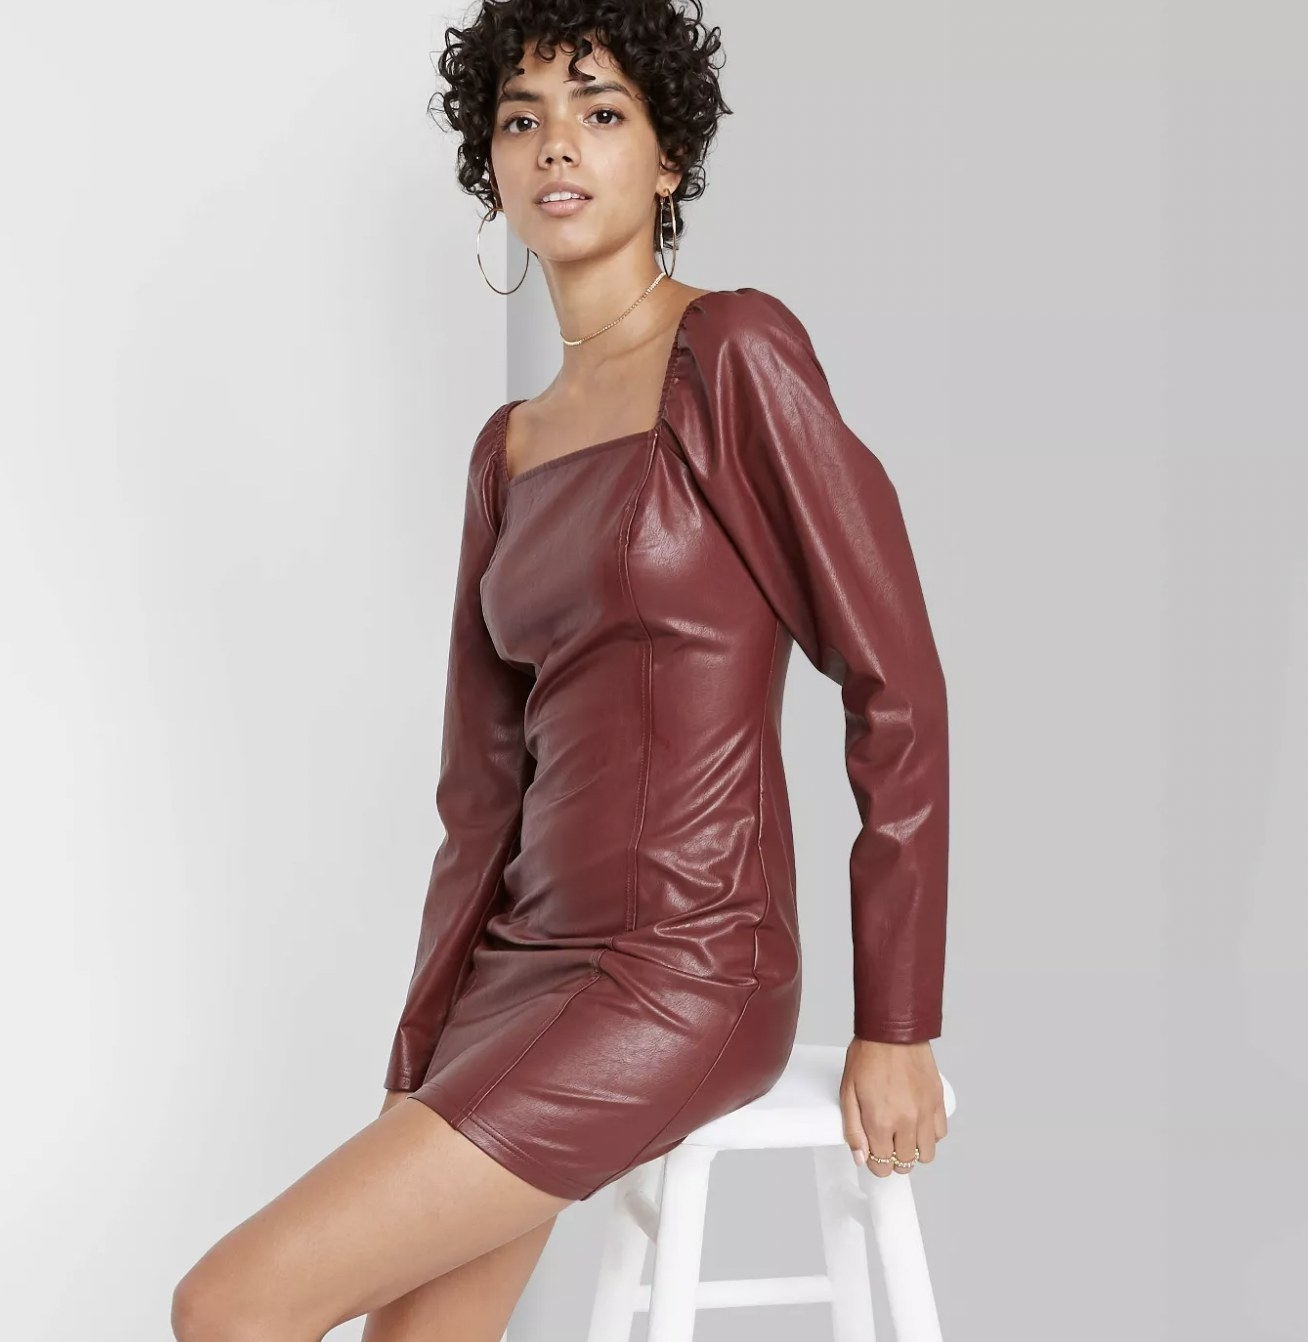 A model wearing a burgundy leather dress and hoop style earrings